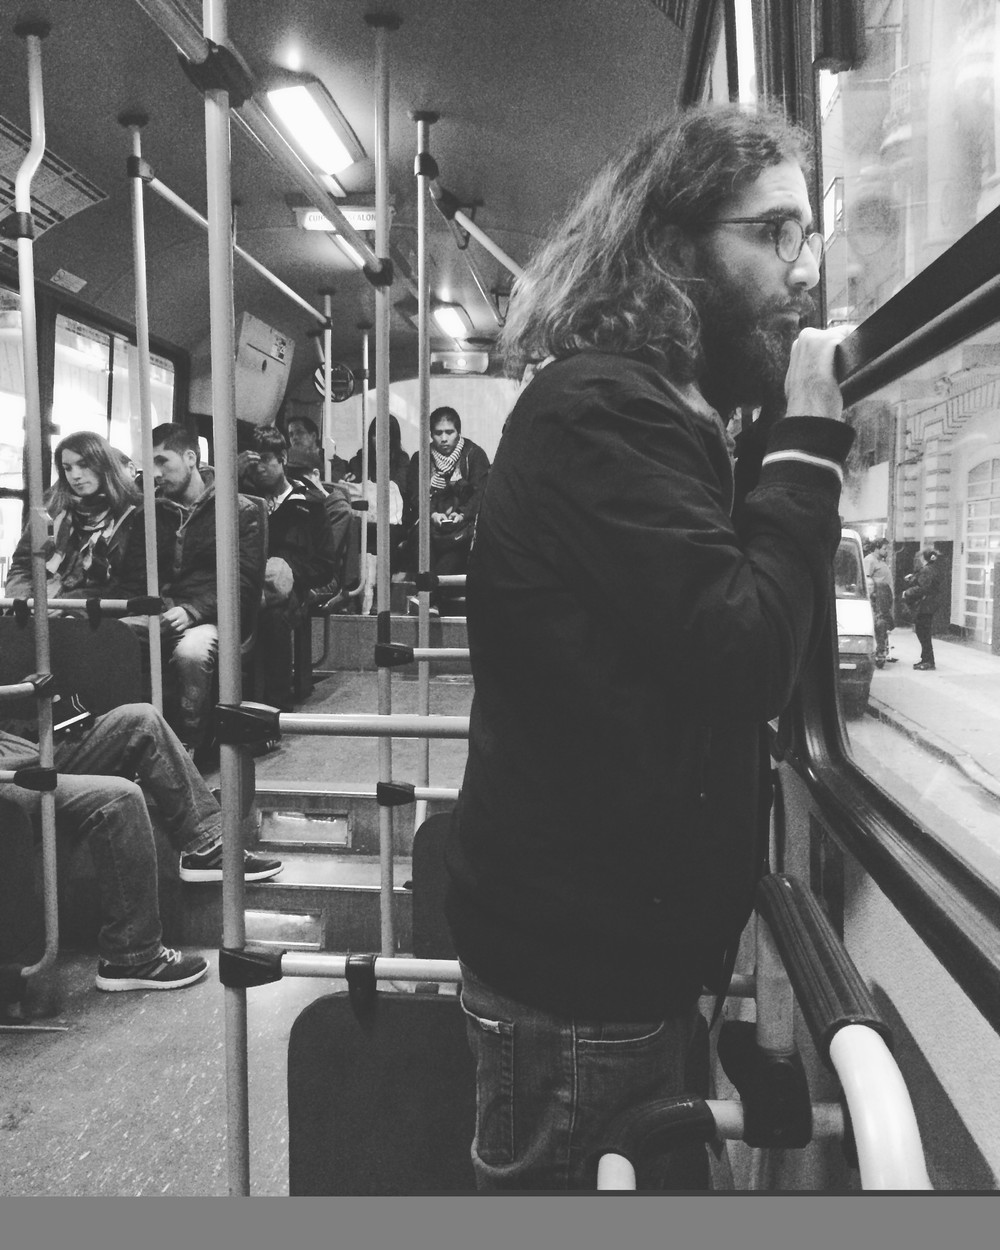 bus-Buenos-Aires